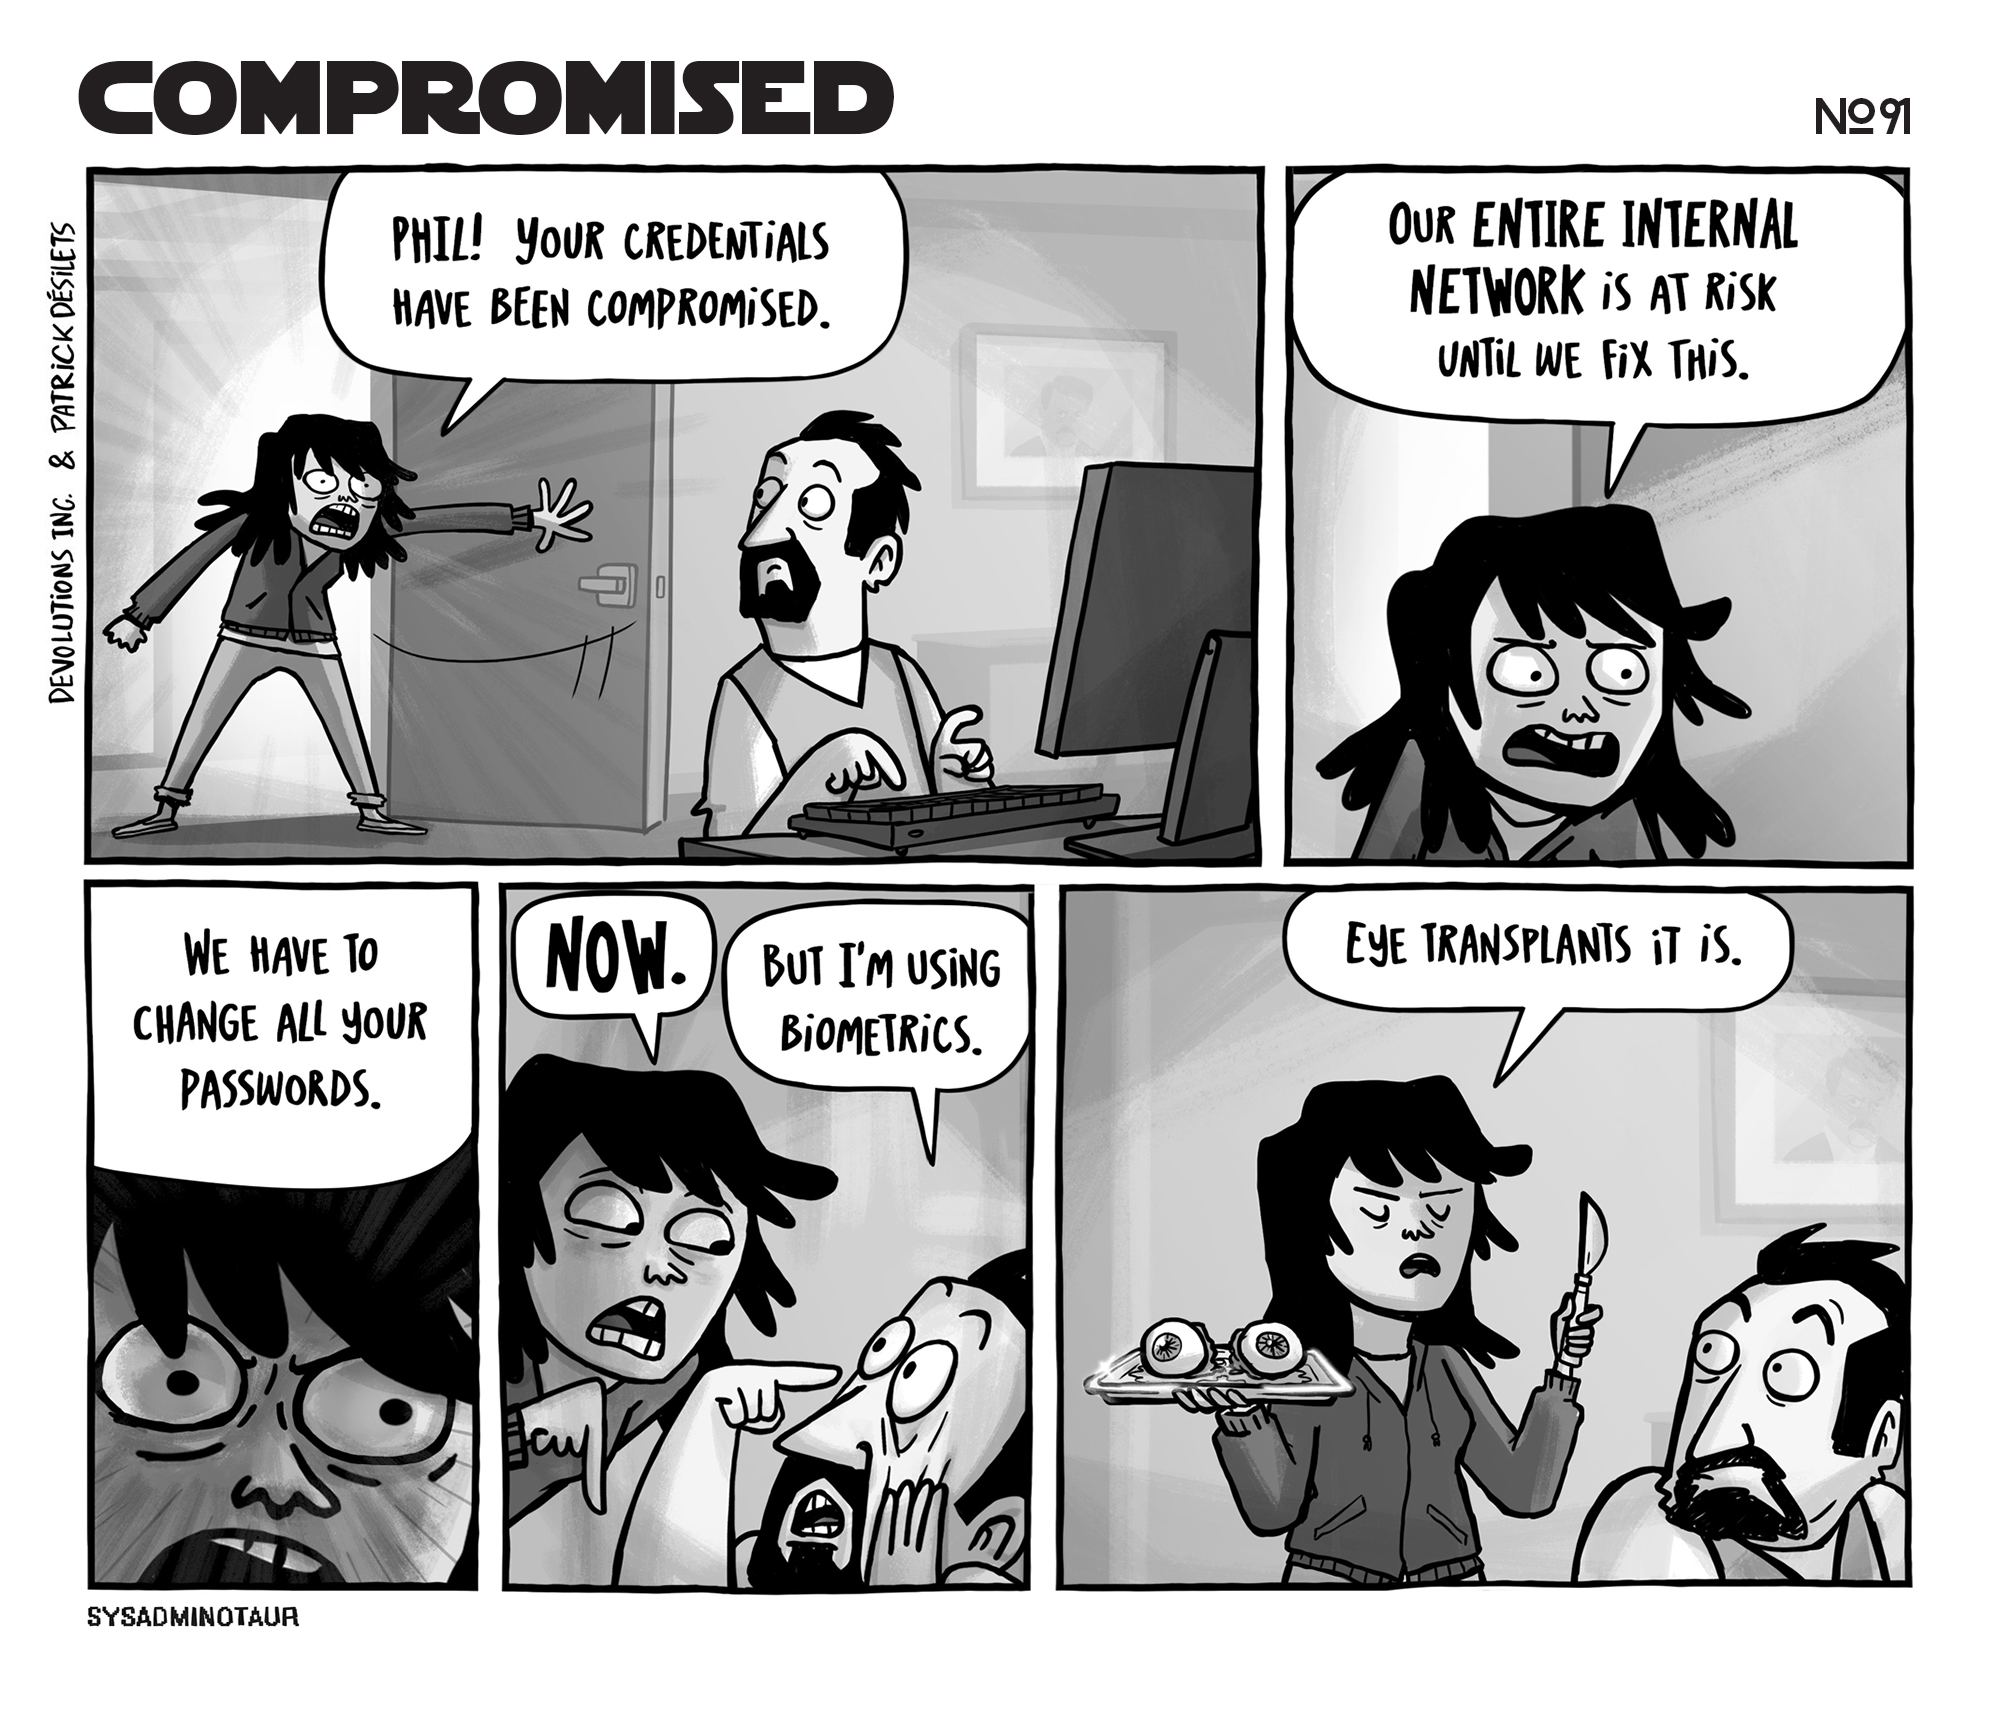 sysadminotaur-091-compromised